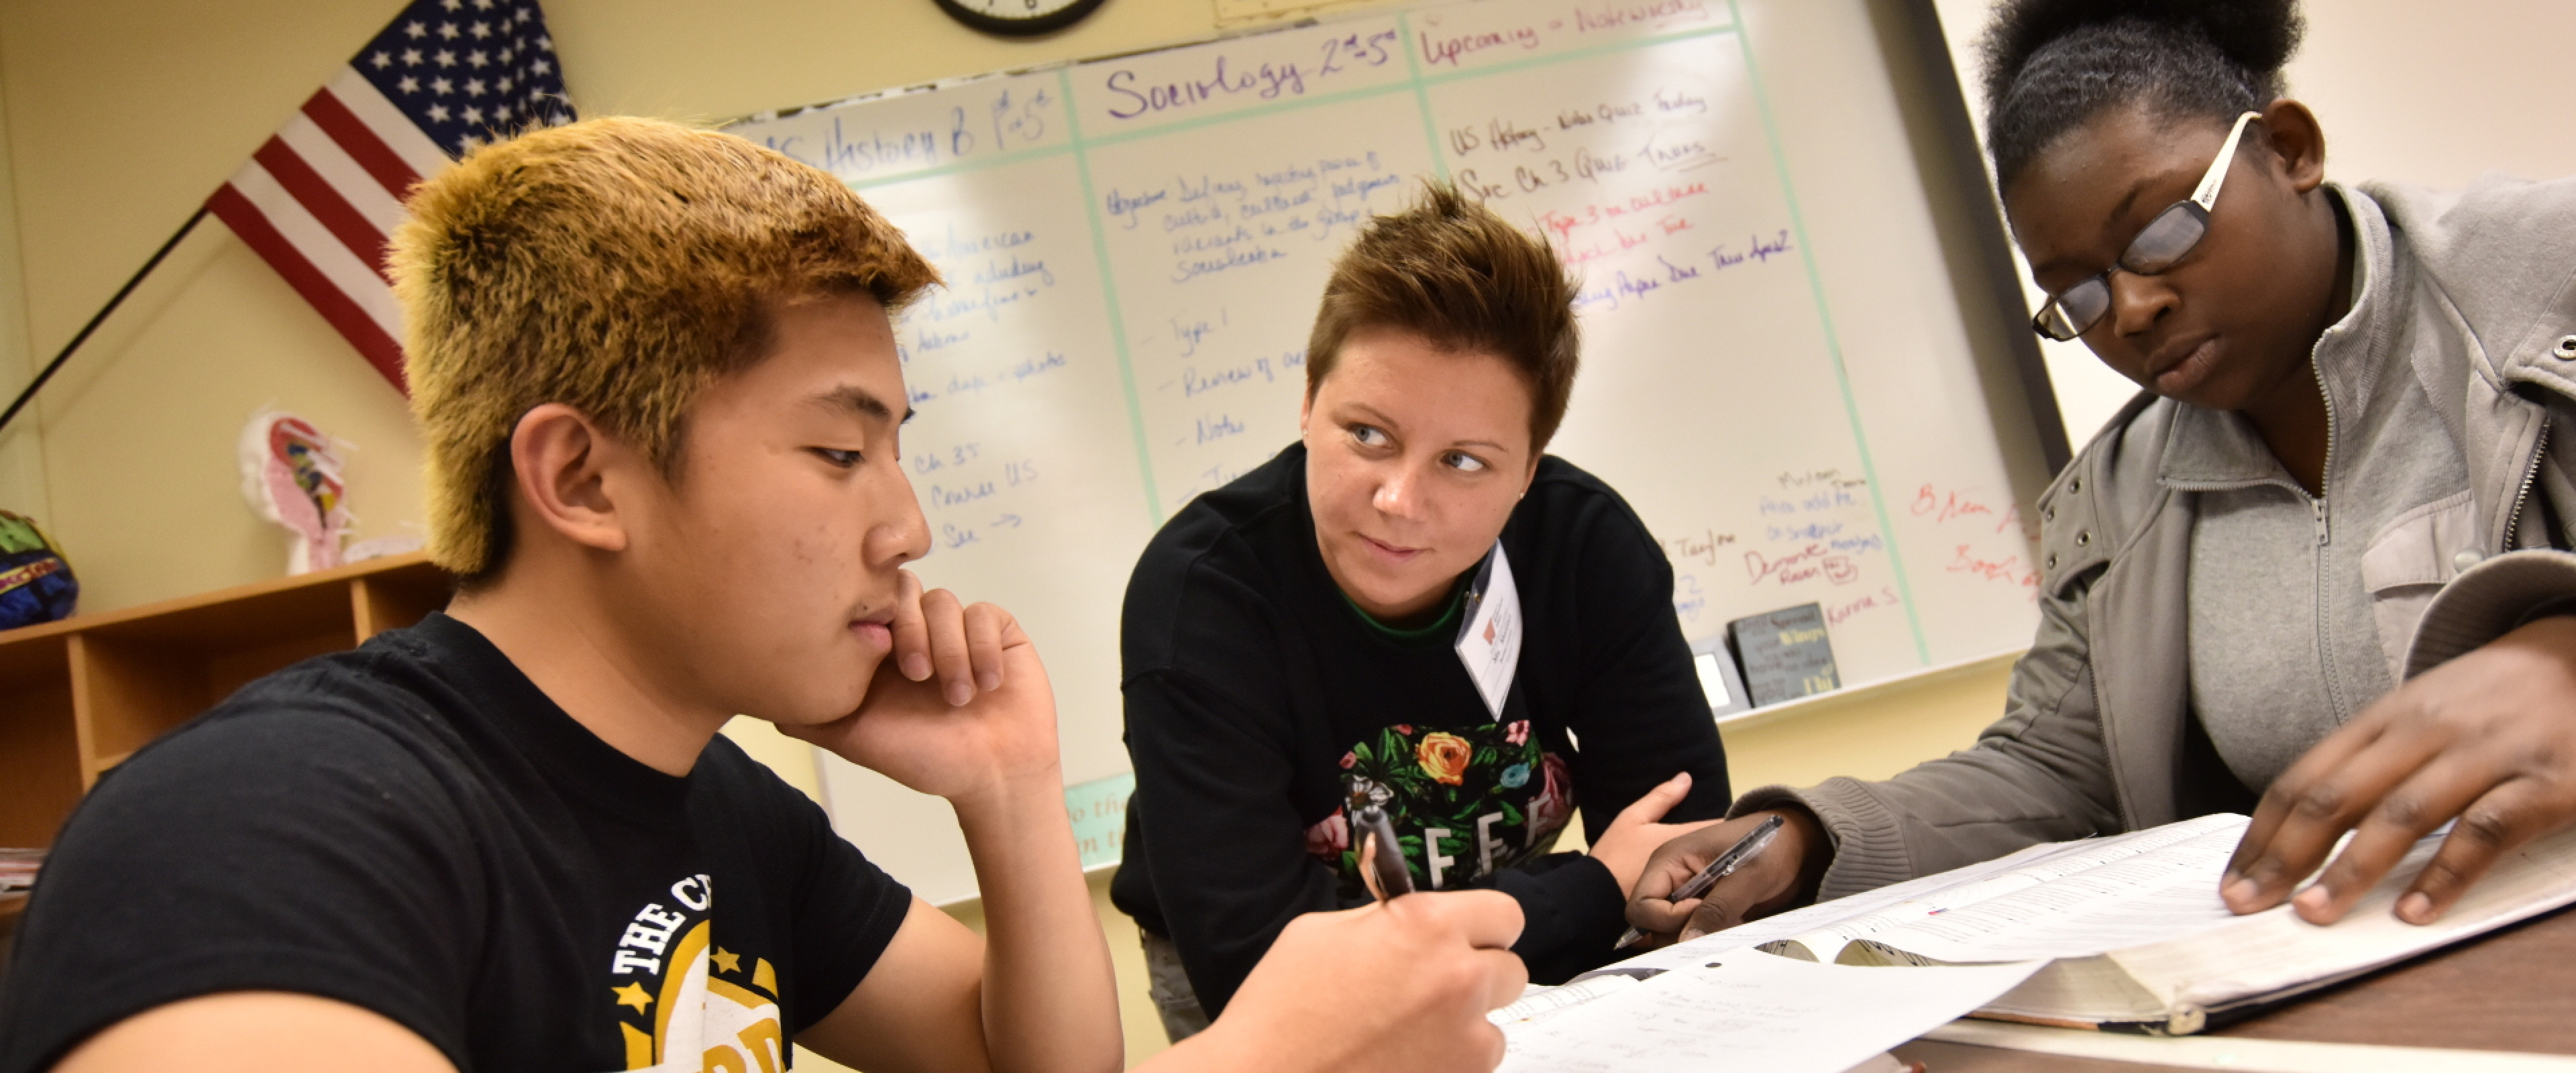 Upward Bound students being helped by a tutor.